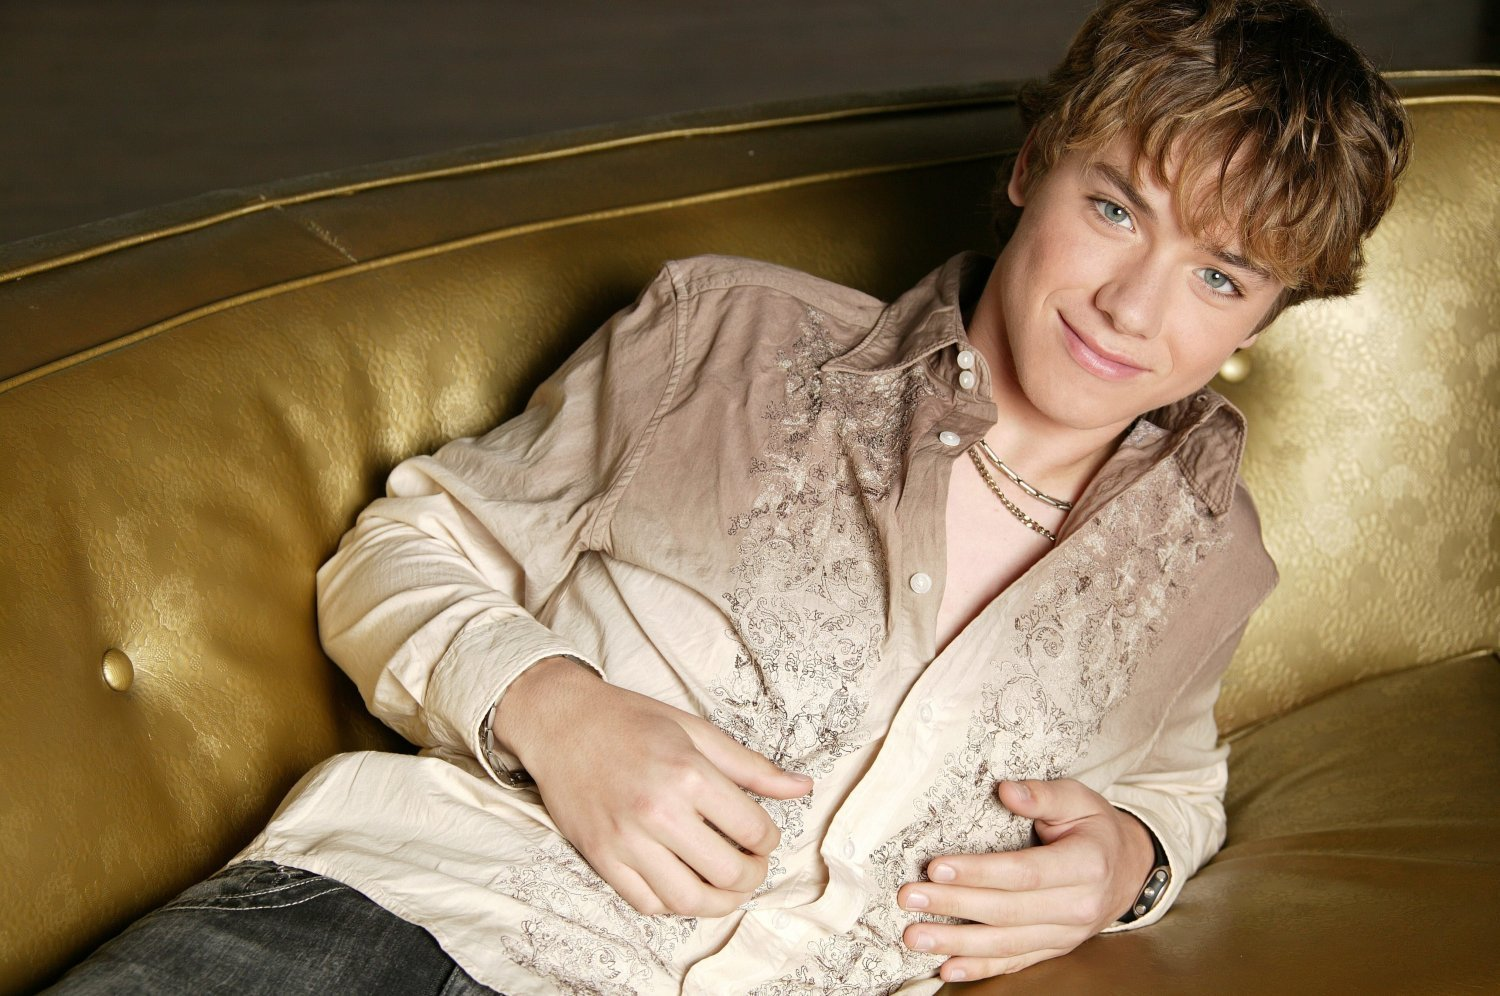 News and entertainment: jeremy sumpter (Jan 04 2013 16:57:50)